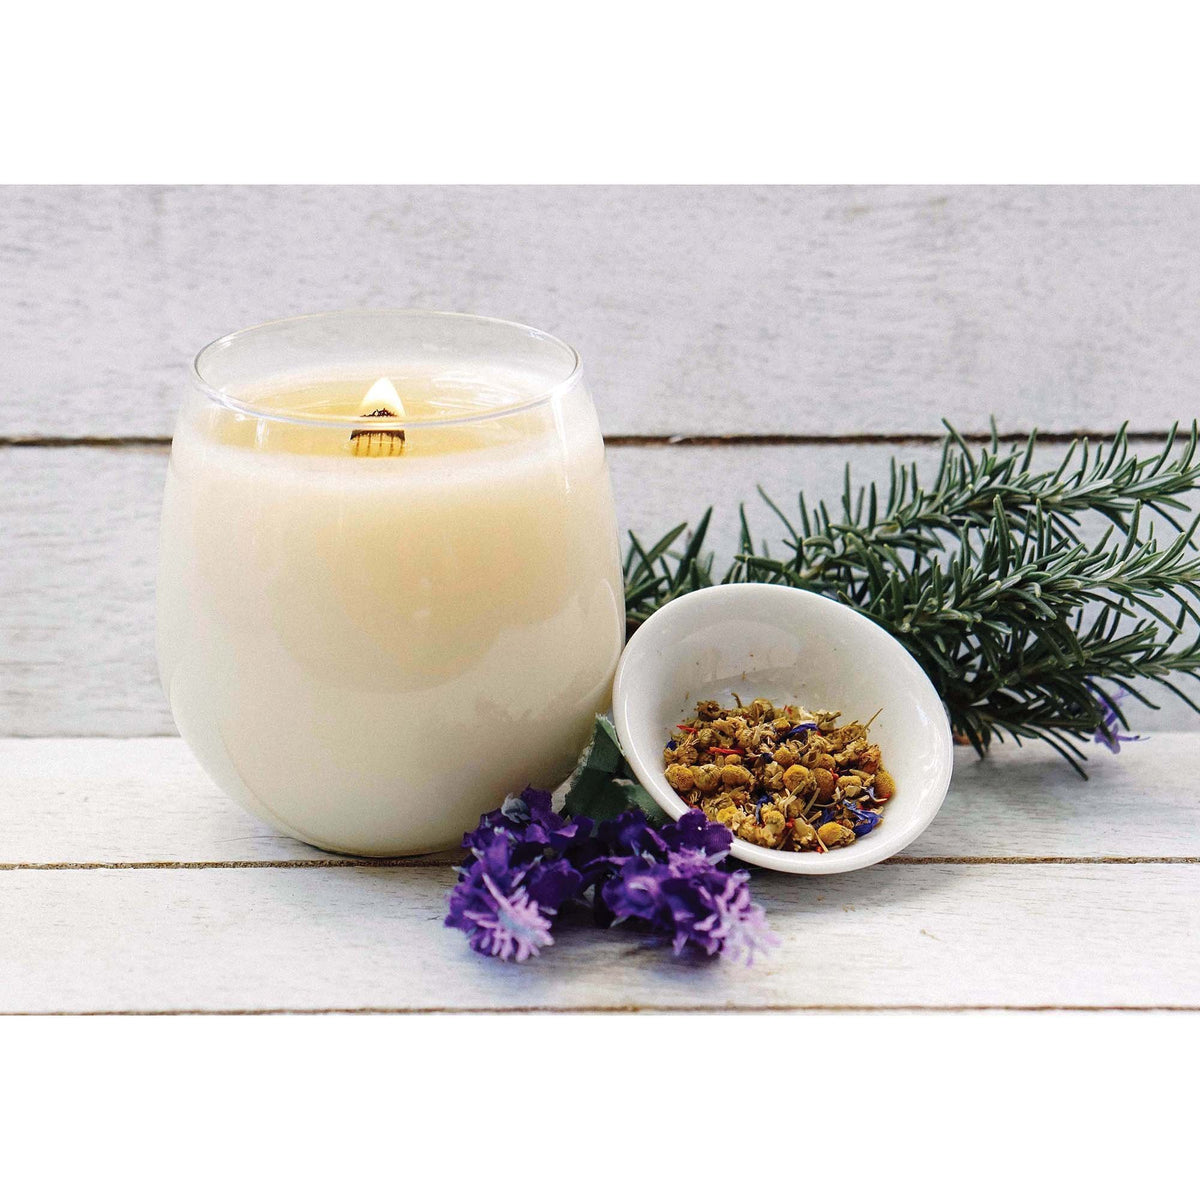 Candles Sanari Candle / Pompelmo / 8.5oz